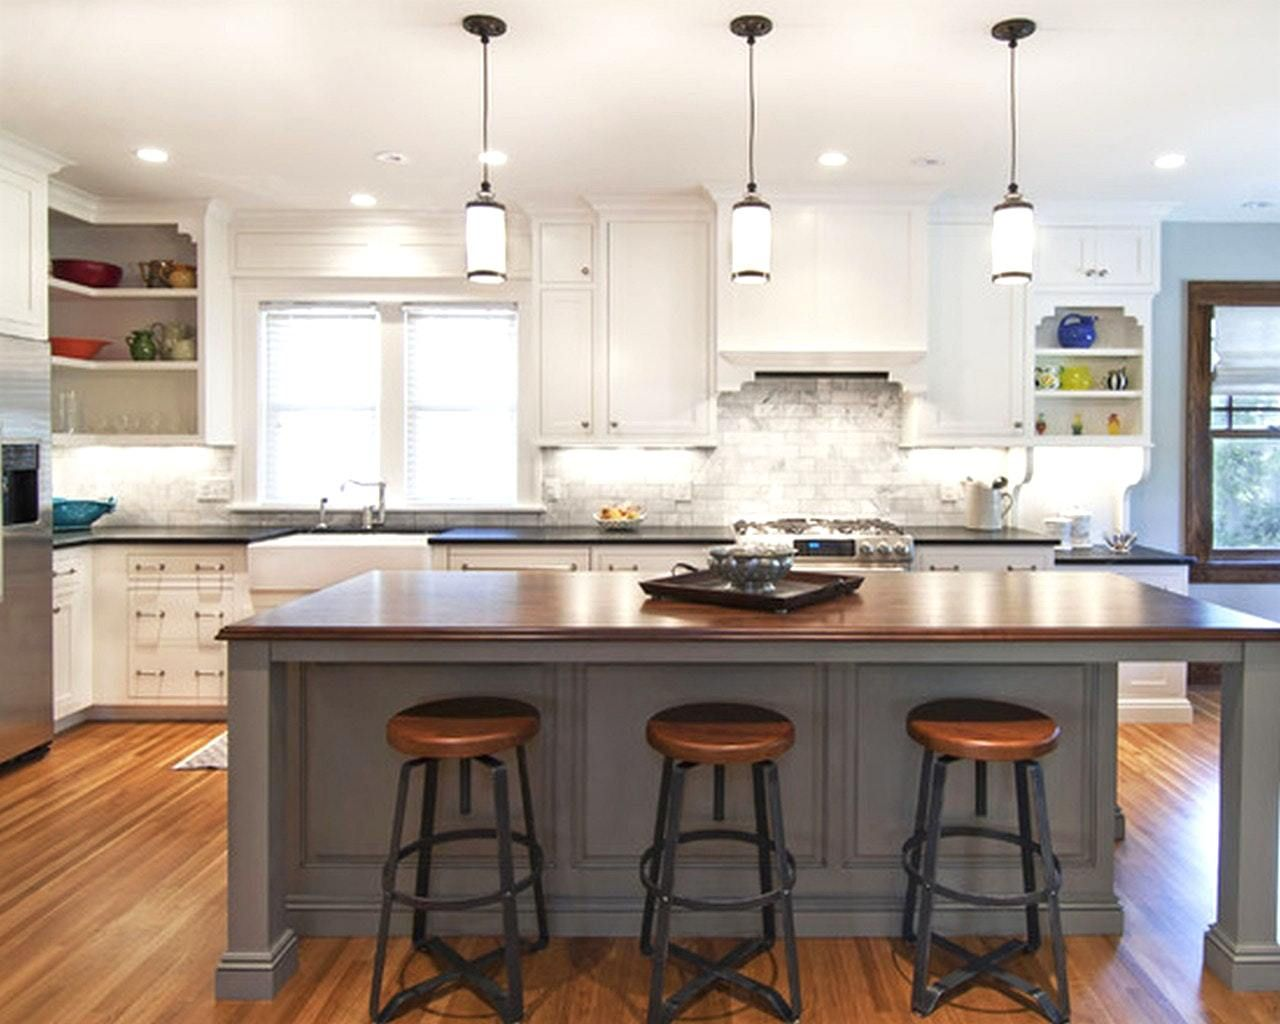 Perfect Pendant Lights Enjoyable Kitchen Lighting Over Table Modern For Island With  Copper Light Above And Lightings